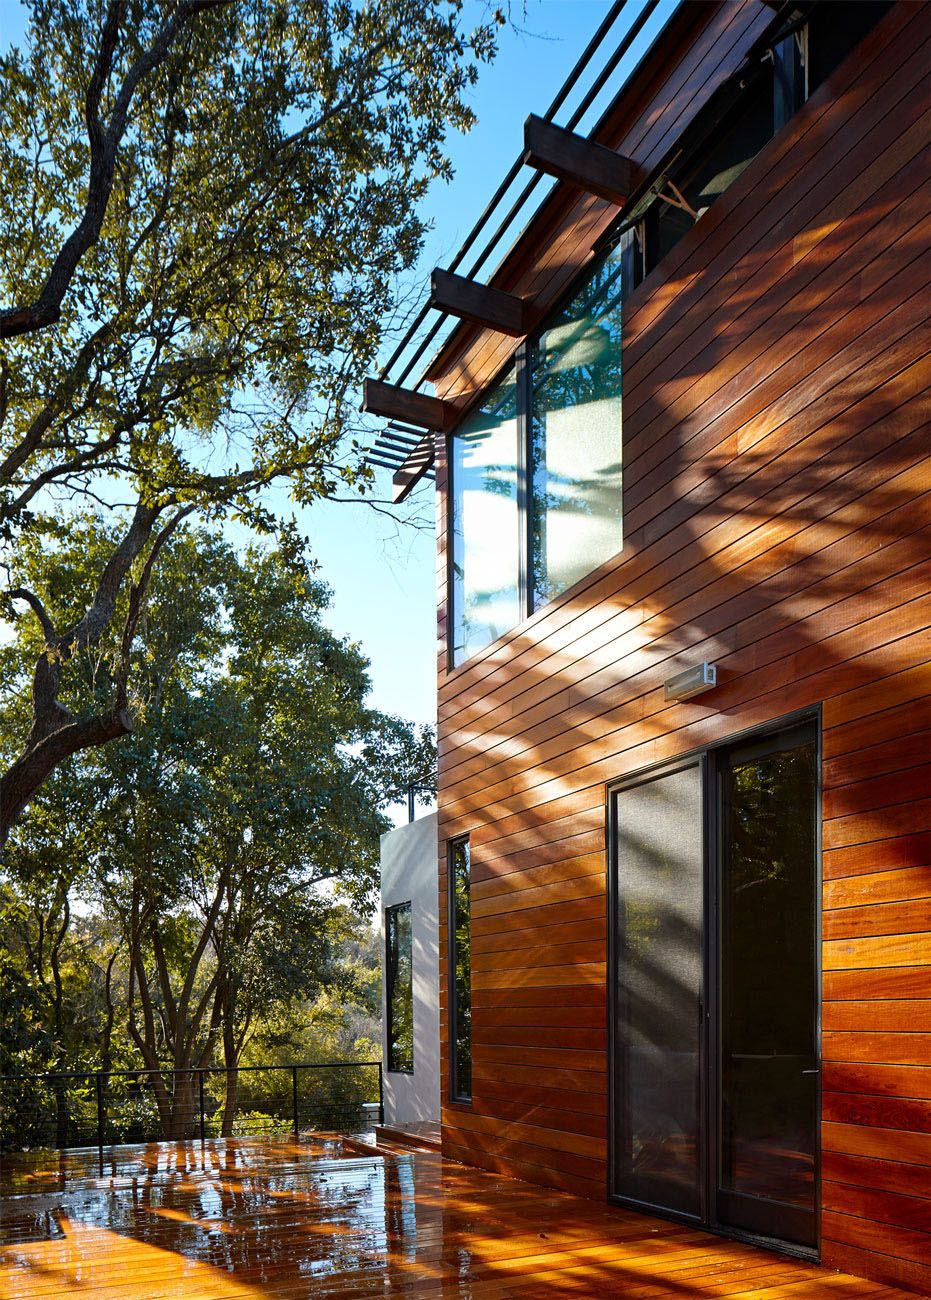 Rancher Morphed Into Sustainable 2 Storey House With Bridged Pool Tree House Designs Exterior Wall Design House Architecture Design